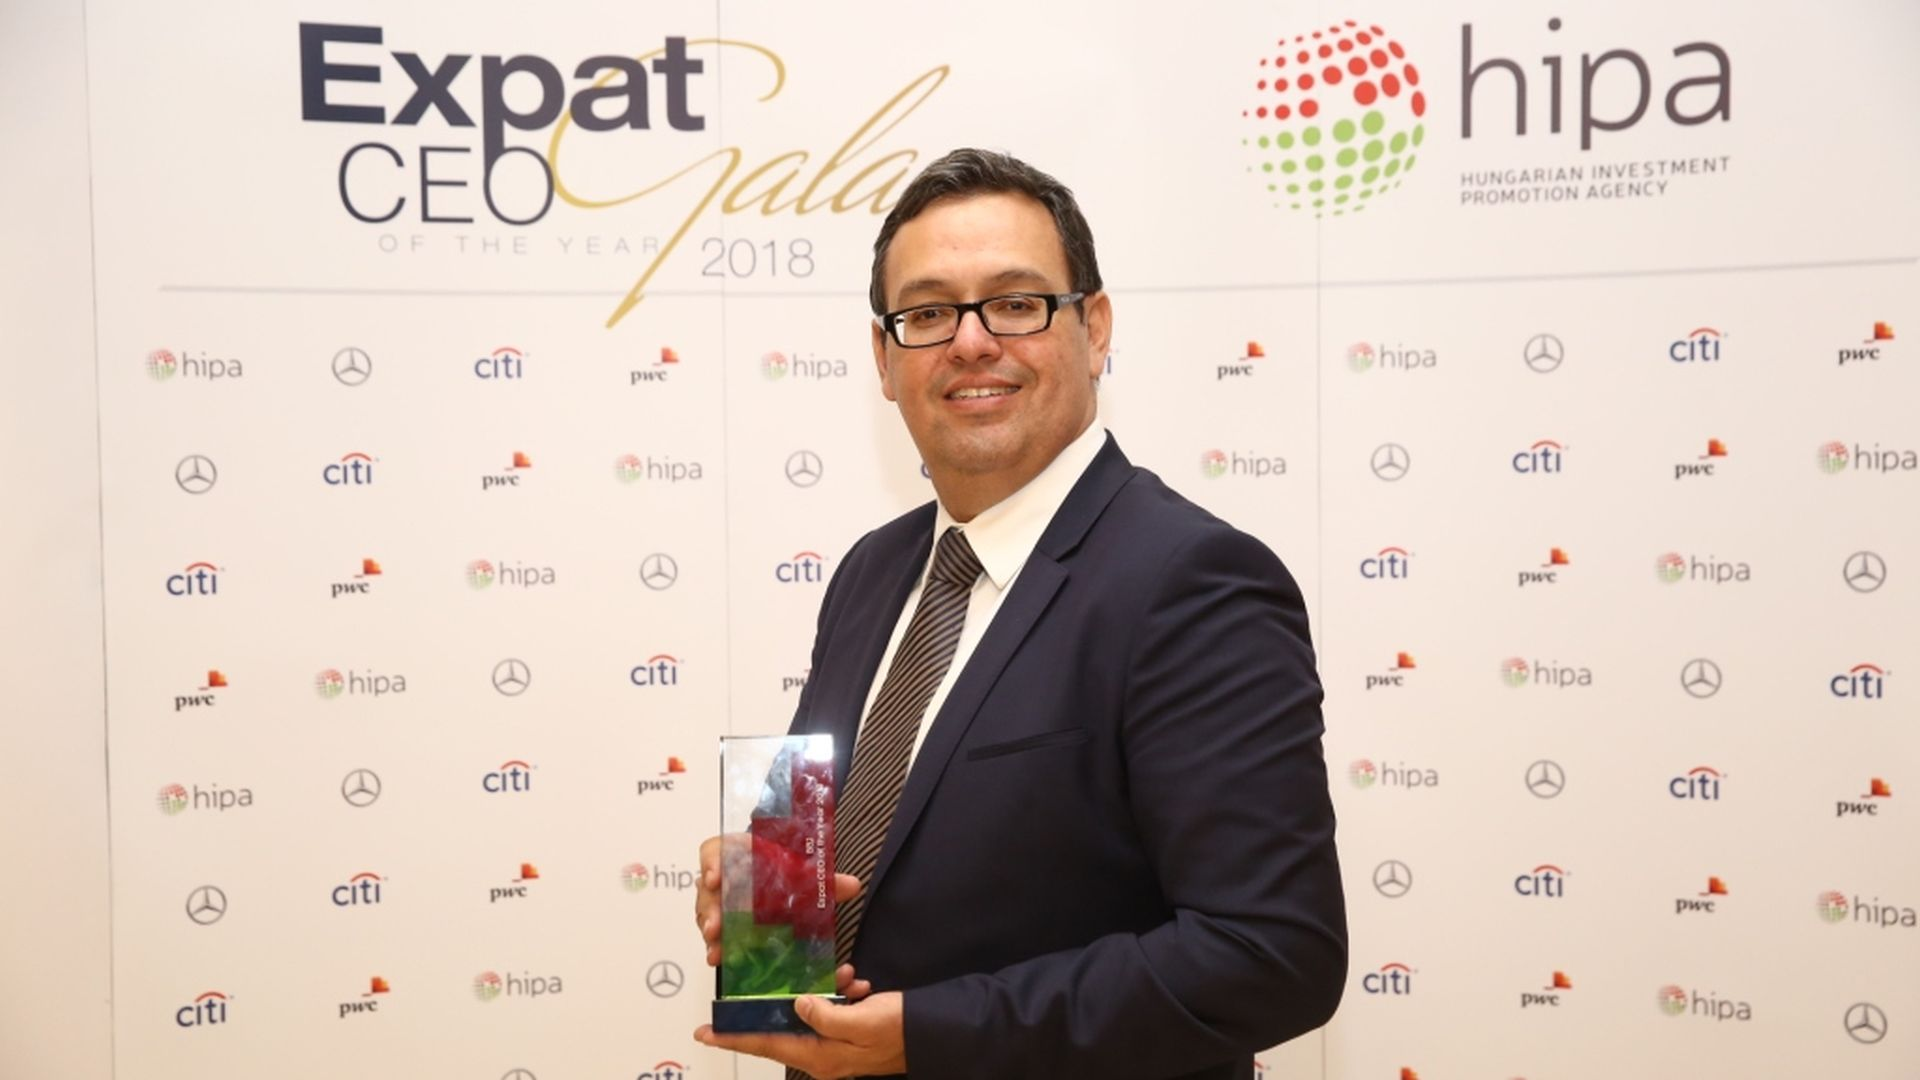 HIPA and Budapest Business Journal once again awarded the best foreign CEOs